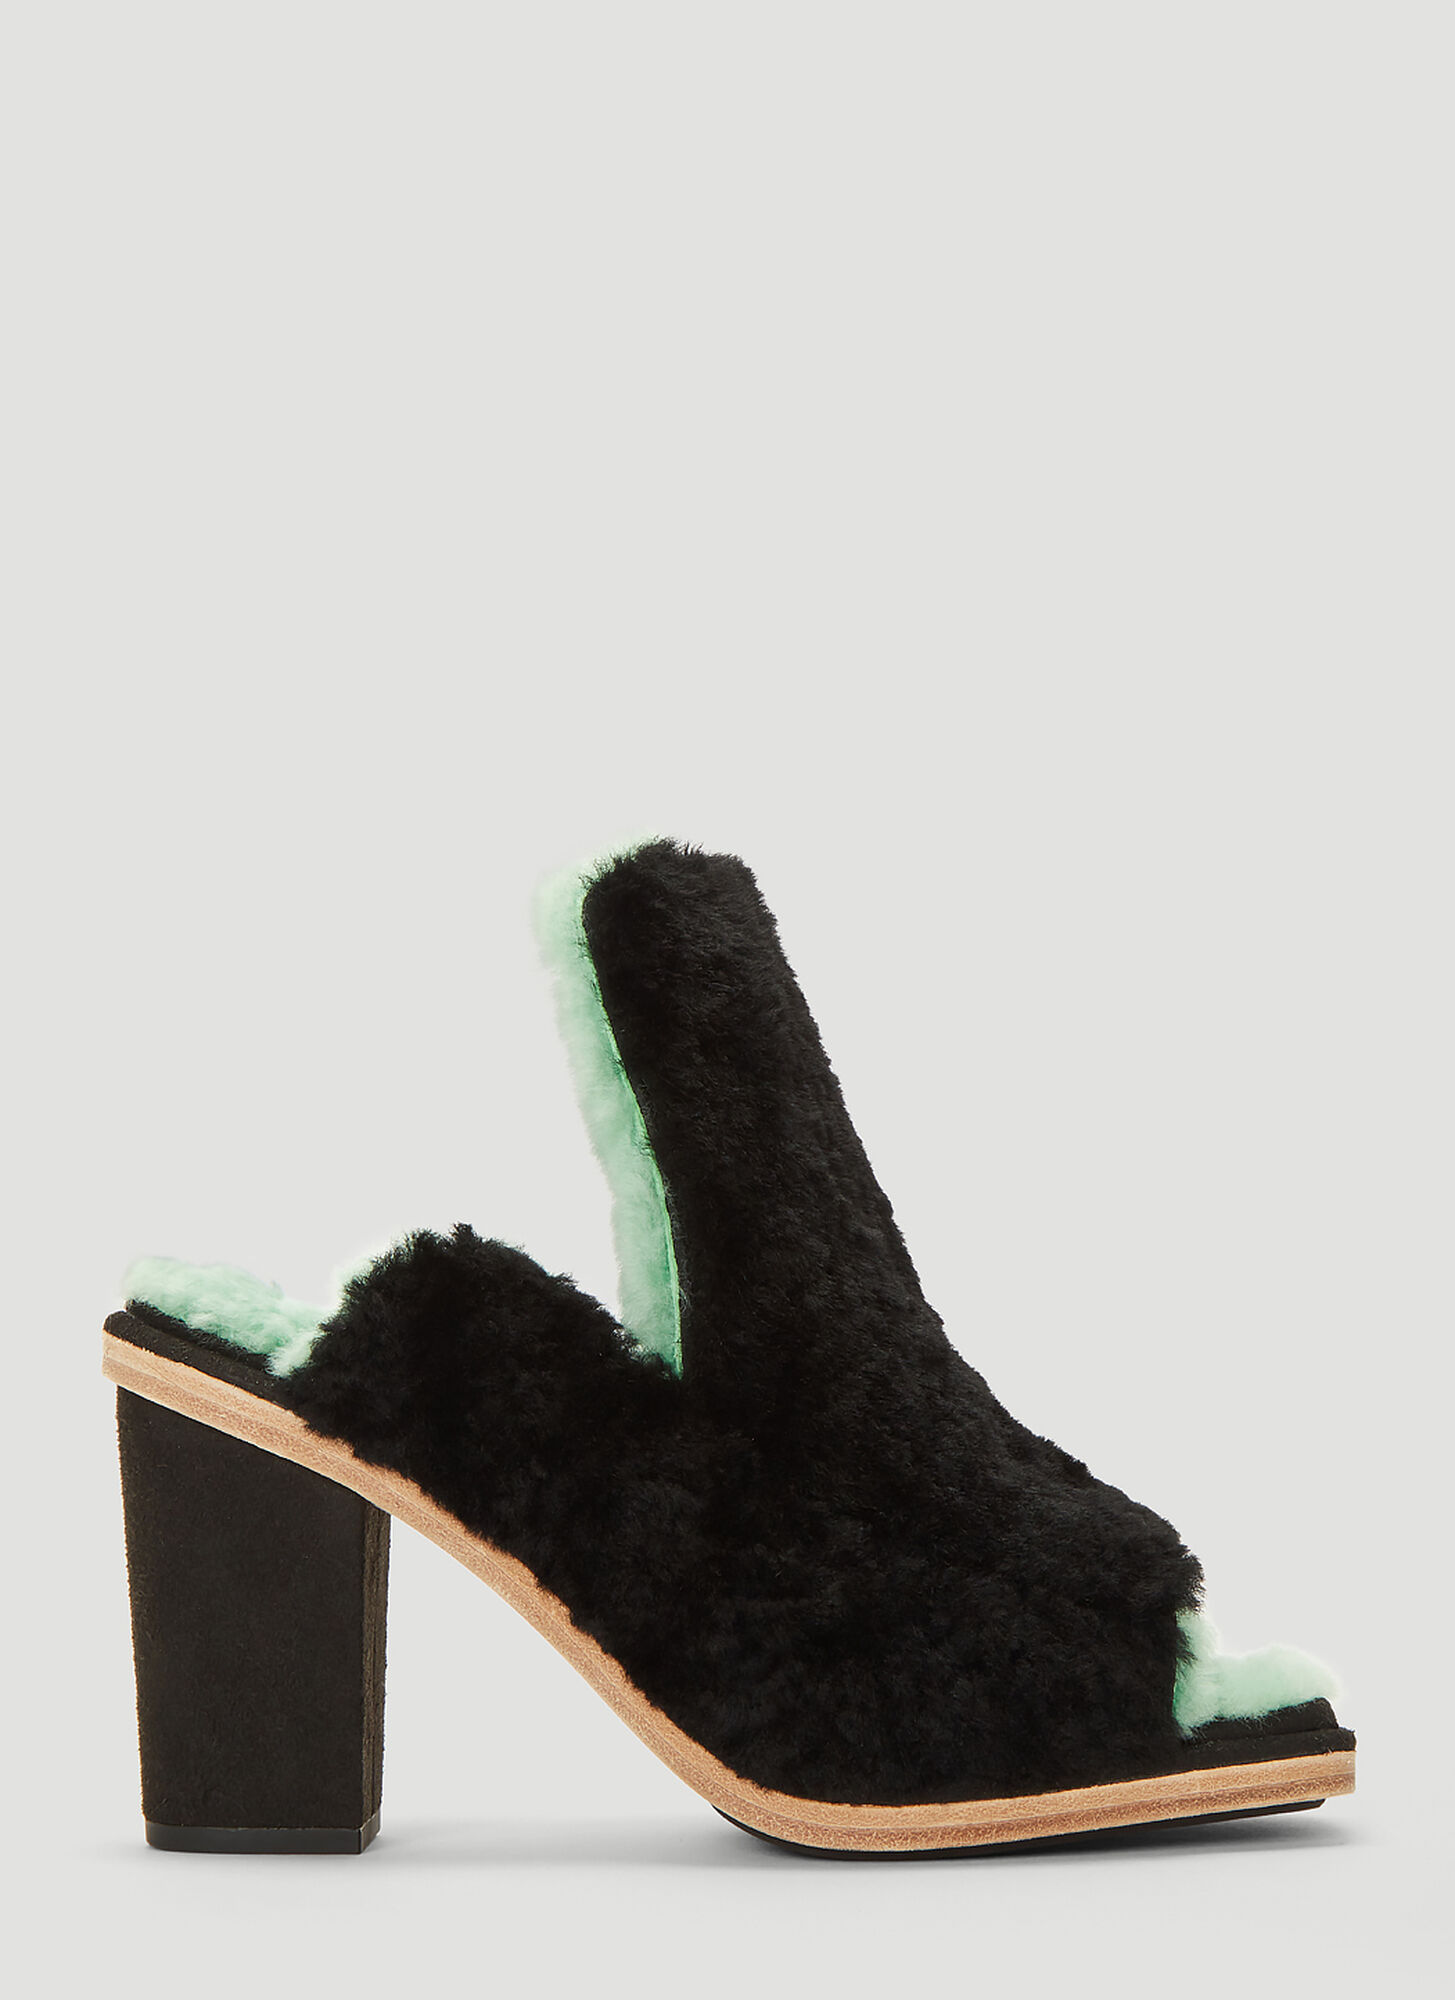 Eckhaus Latta X Ugg Open Toe Mules in Black